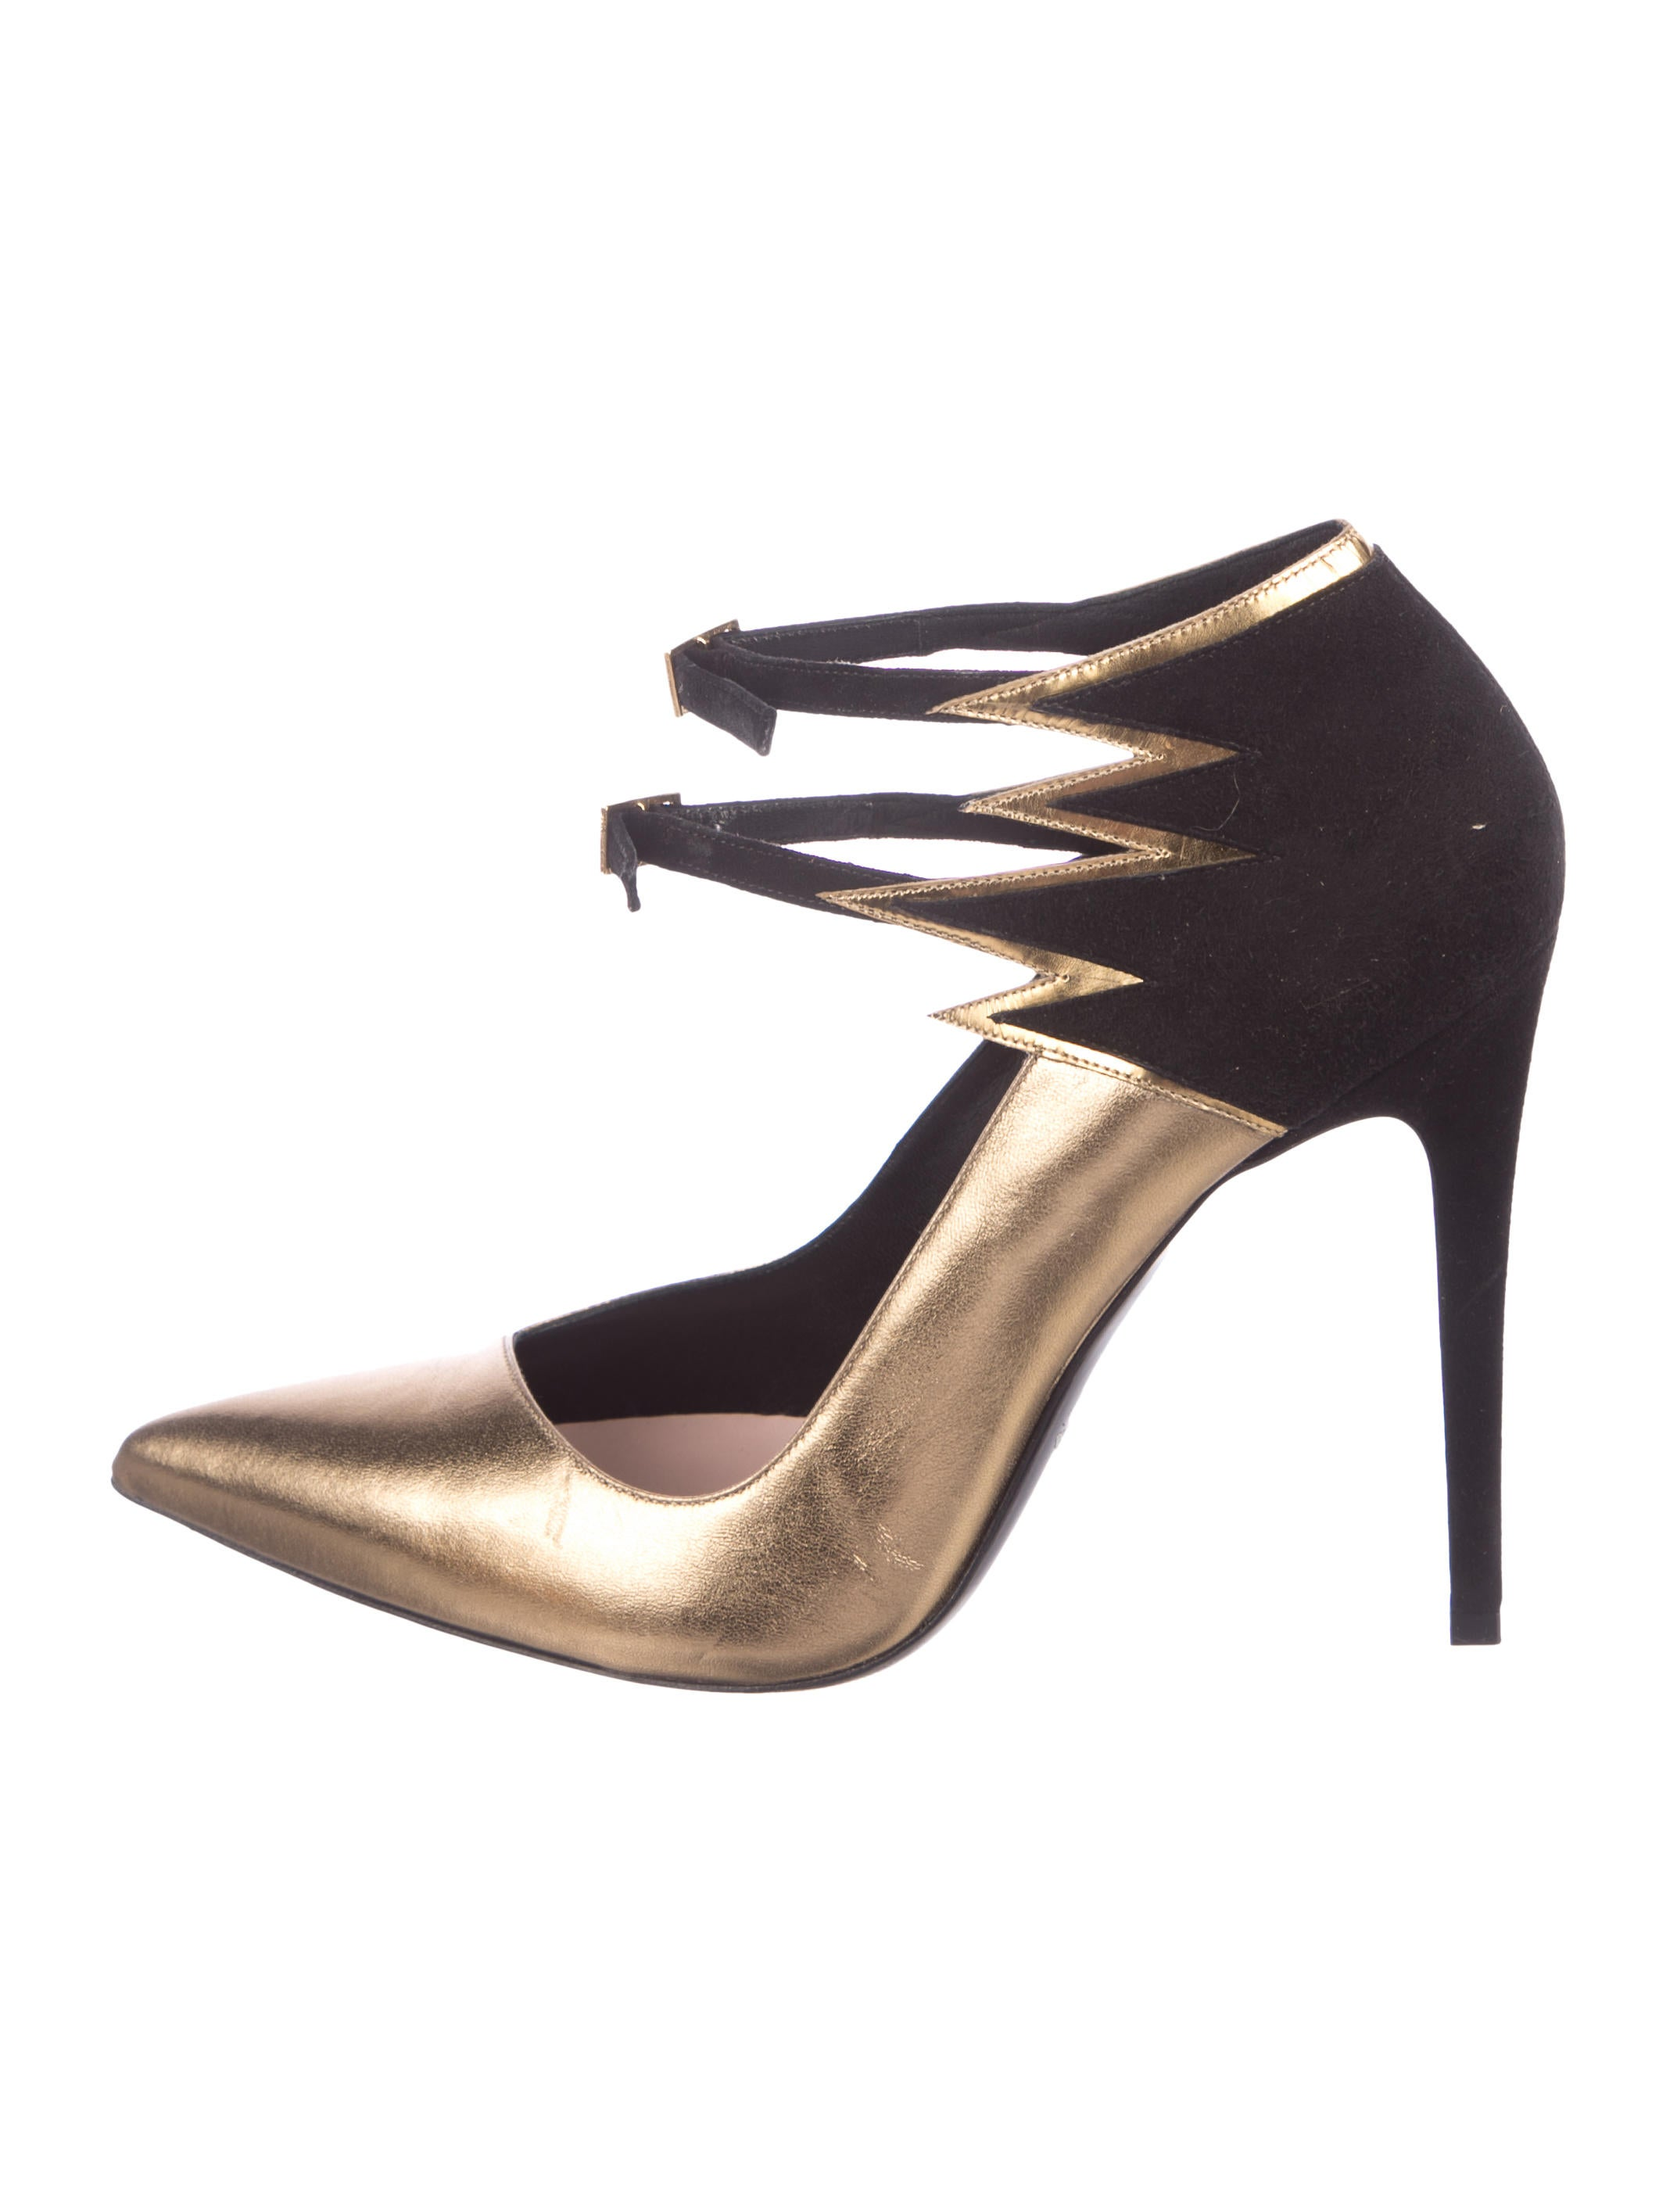 exclusive cheap online Barbara Bui Metallic Flame Pumps sale for nice outlet fashion Style W9ouiQWz